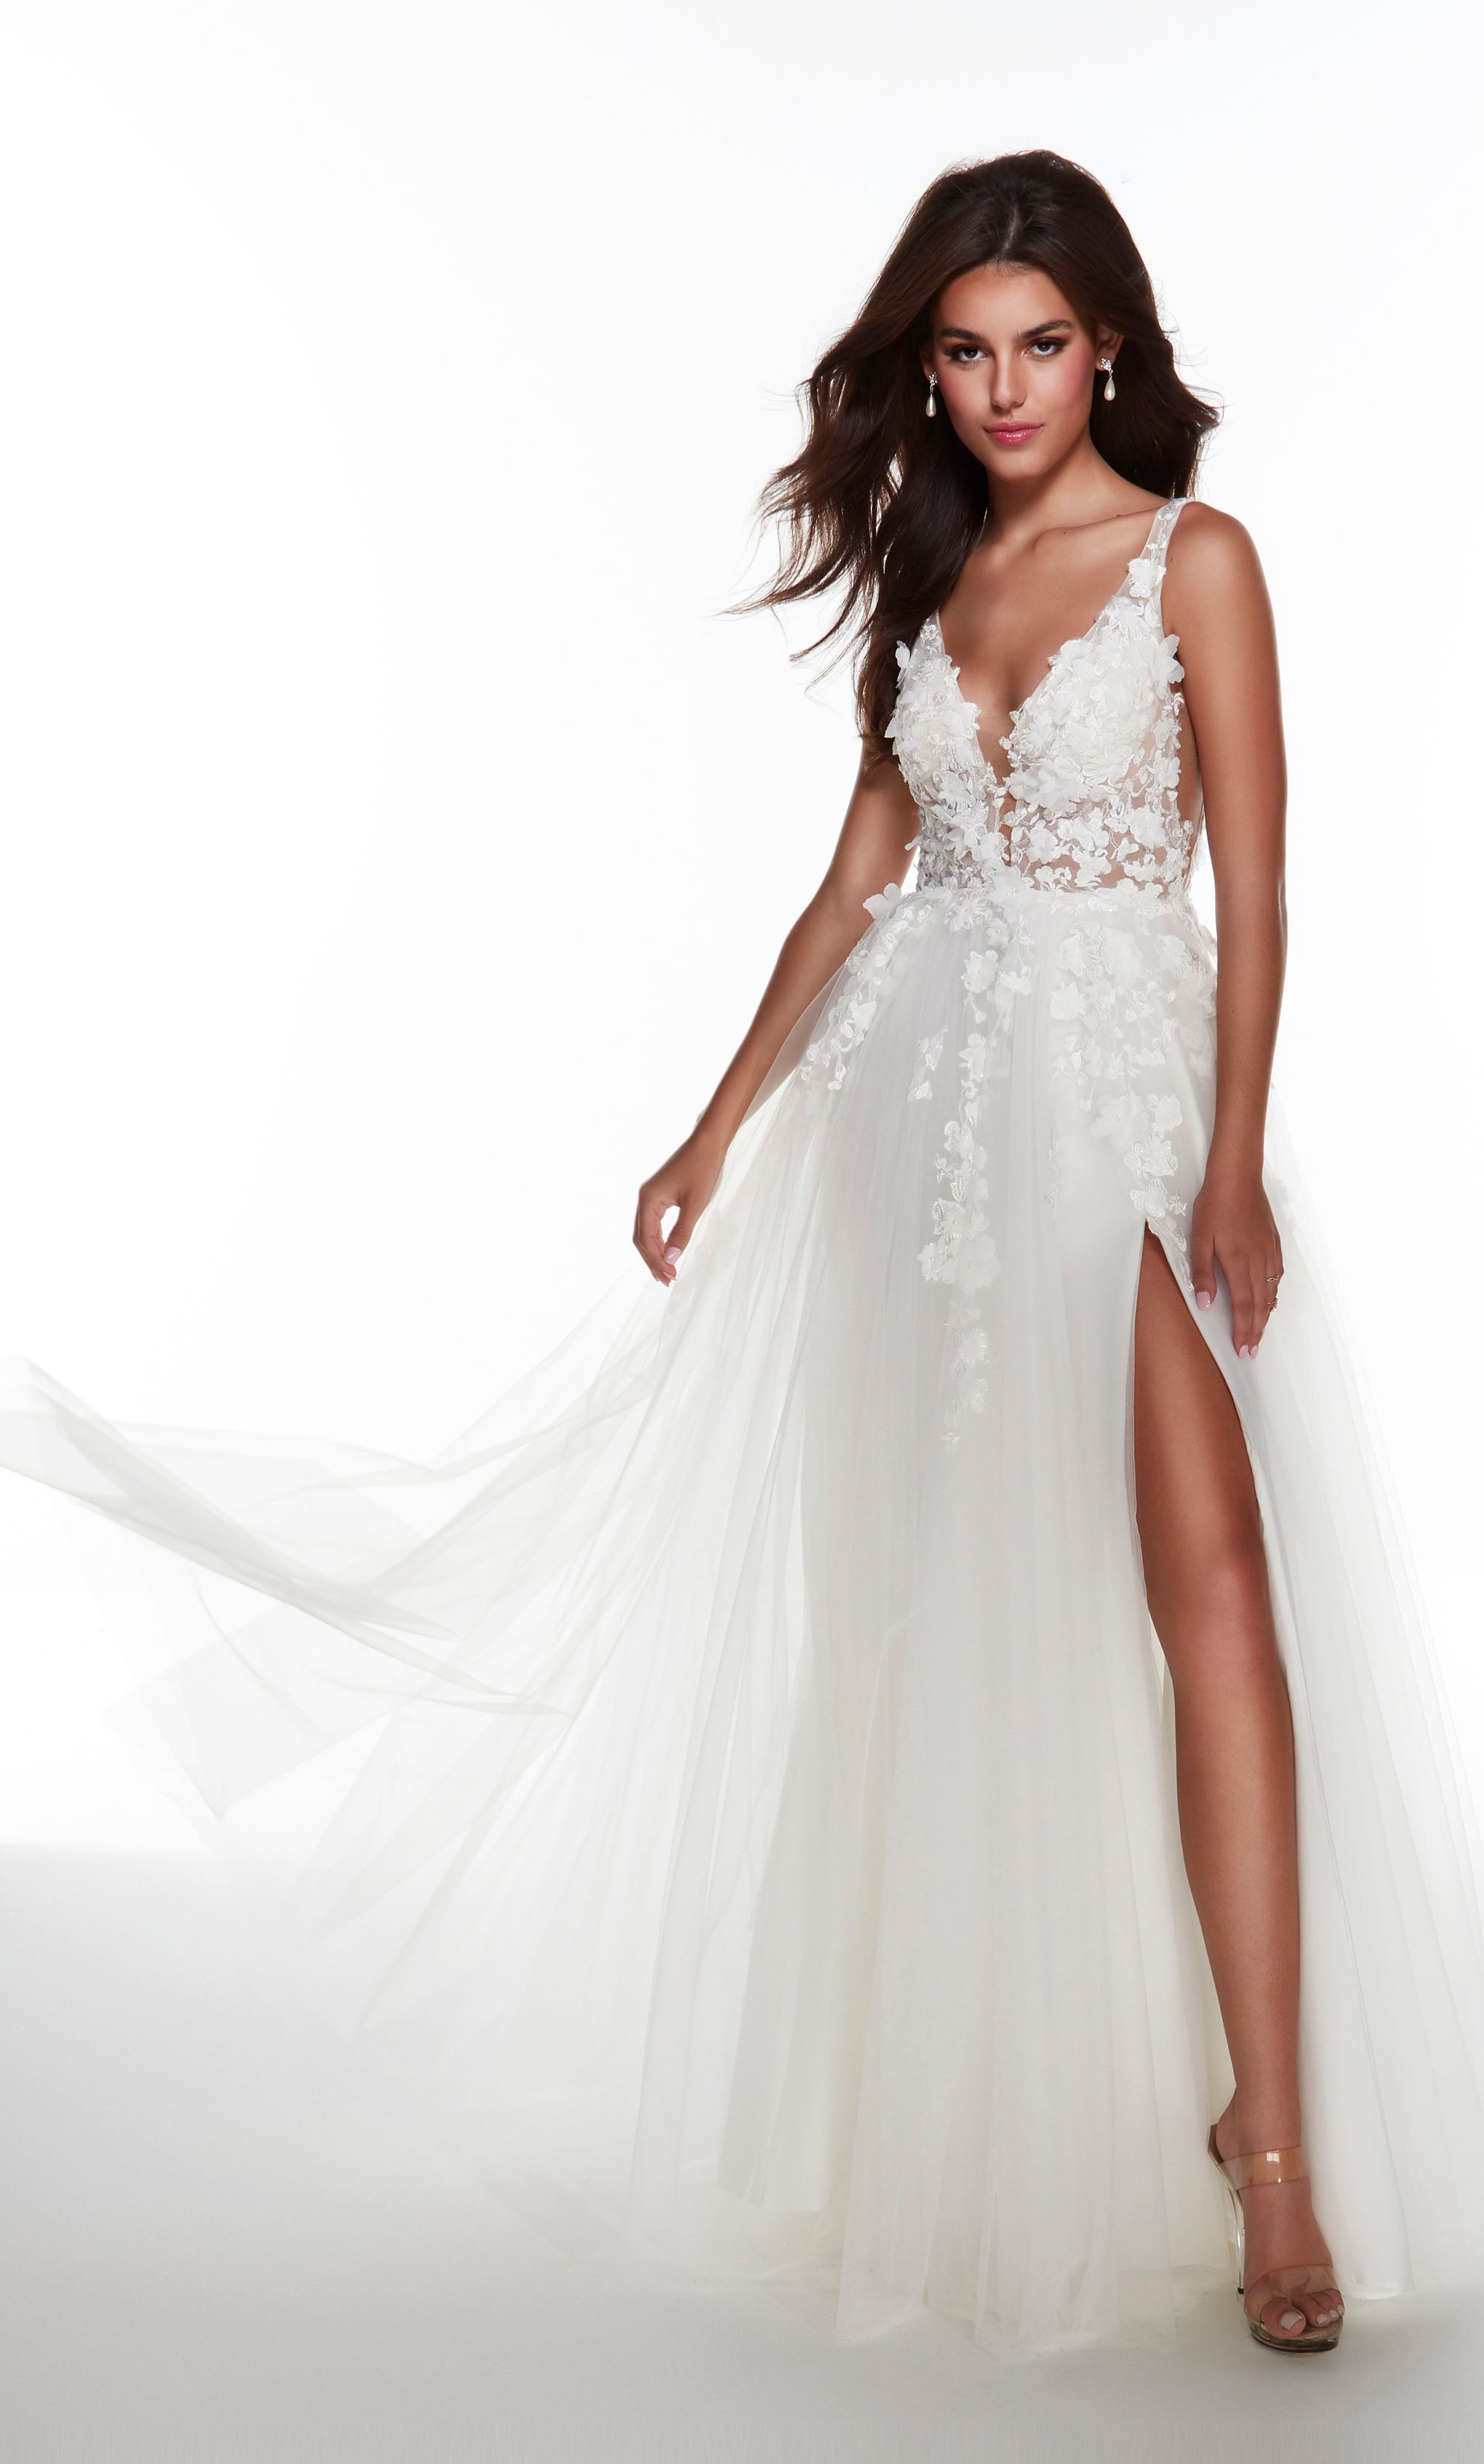 Diamond White wedding dress with a plunging neckline, 3D floral embroidery, and front slit